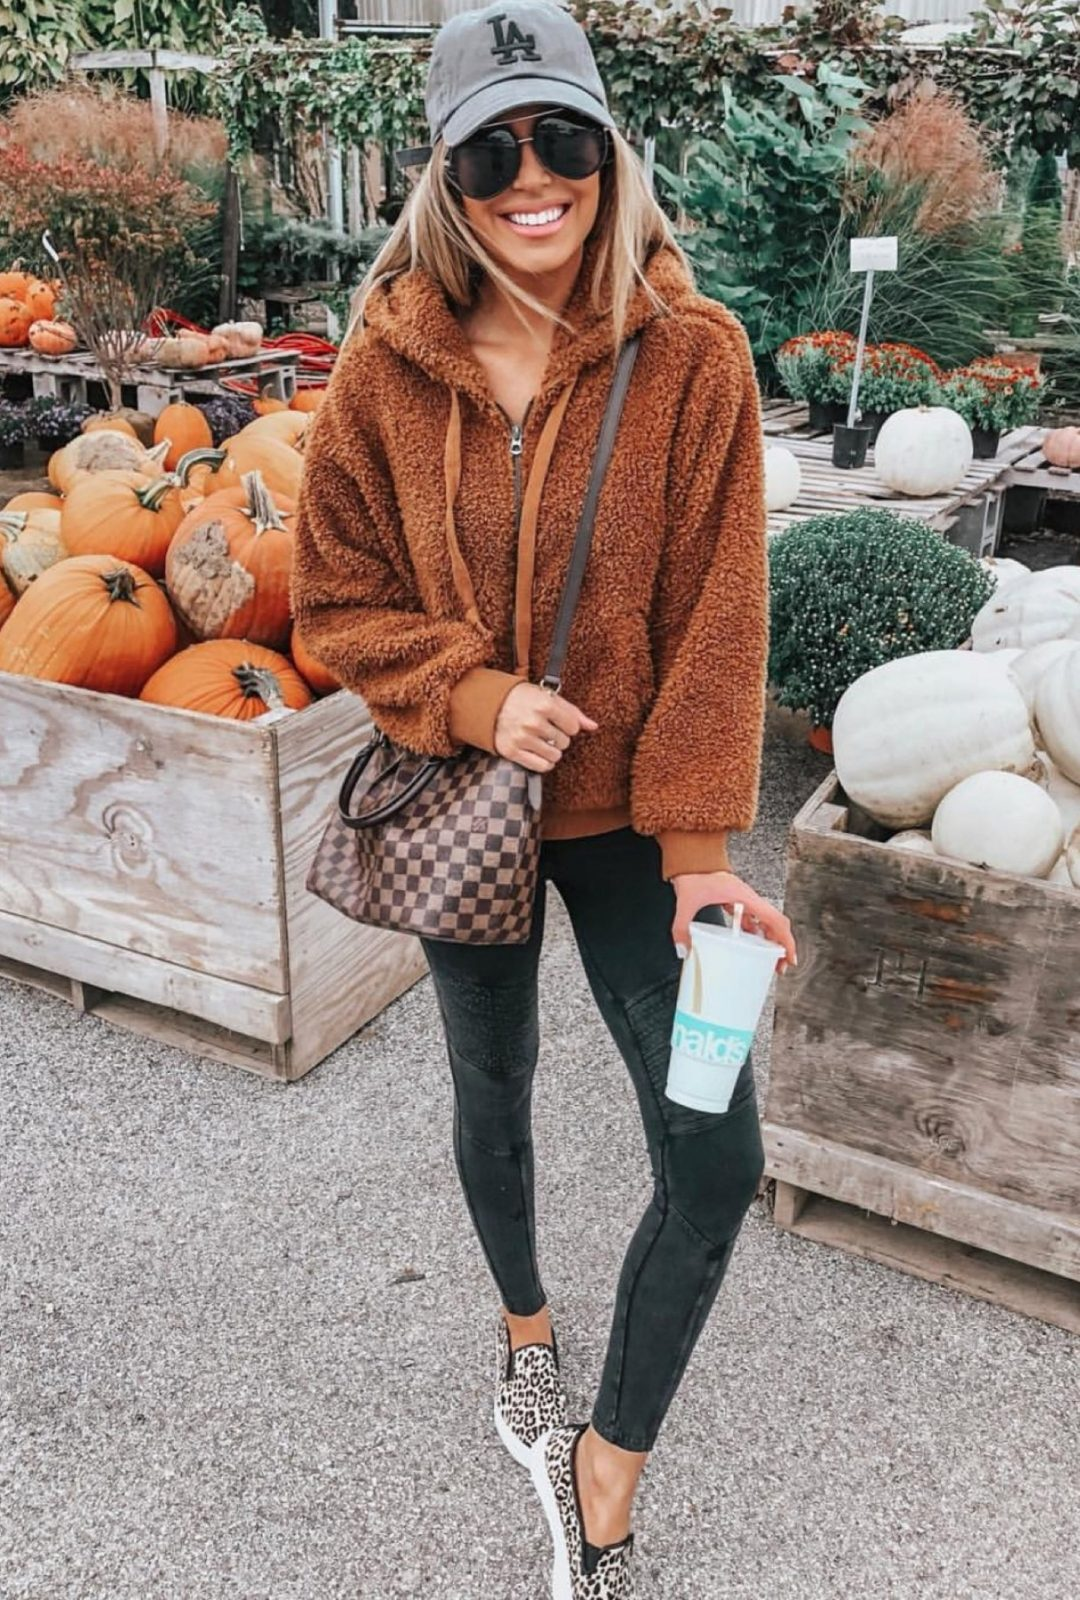 Casual outfit for fall with teddy coat and Louis Vuitton Neverfull